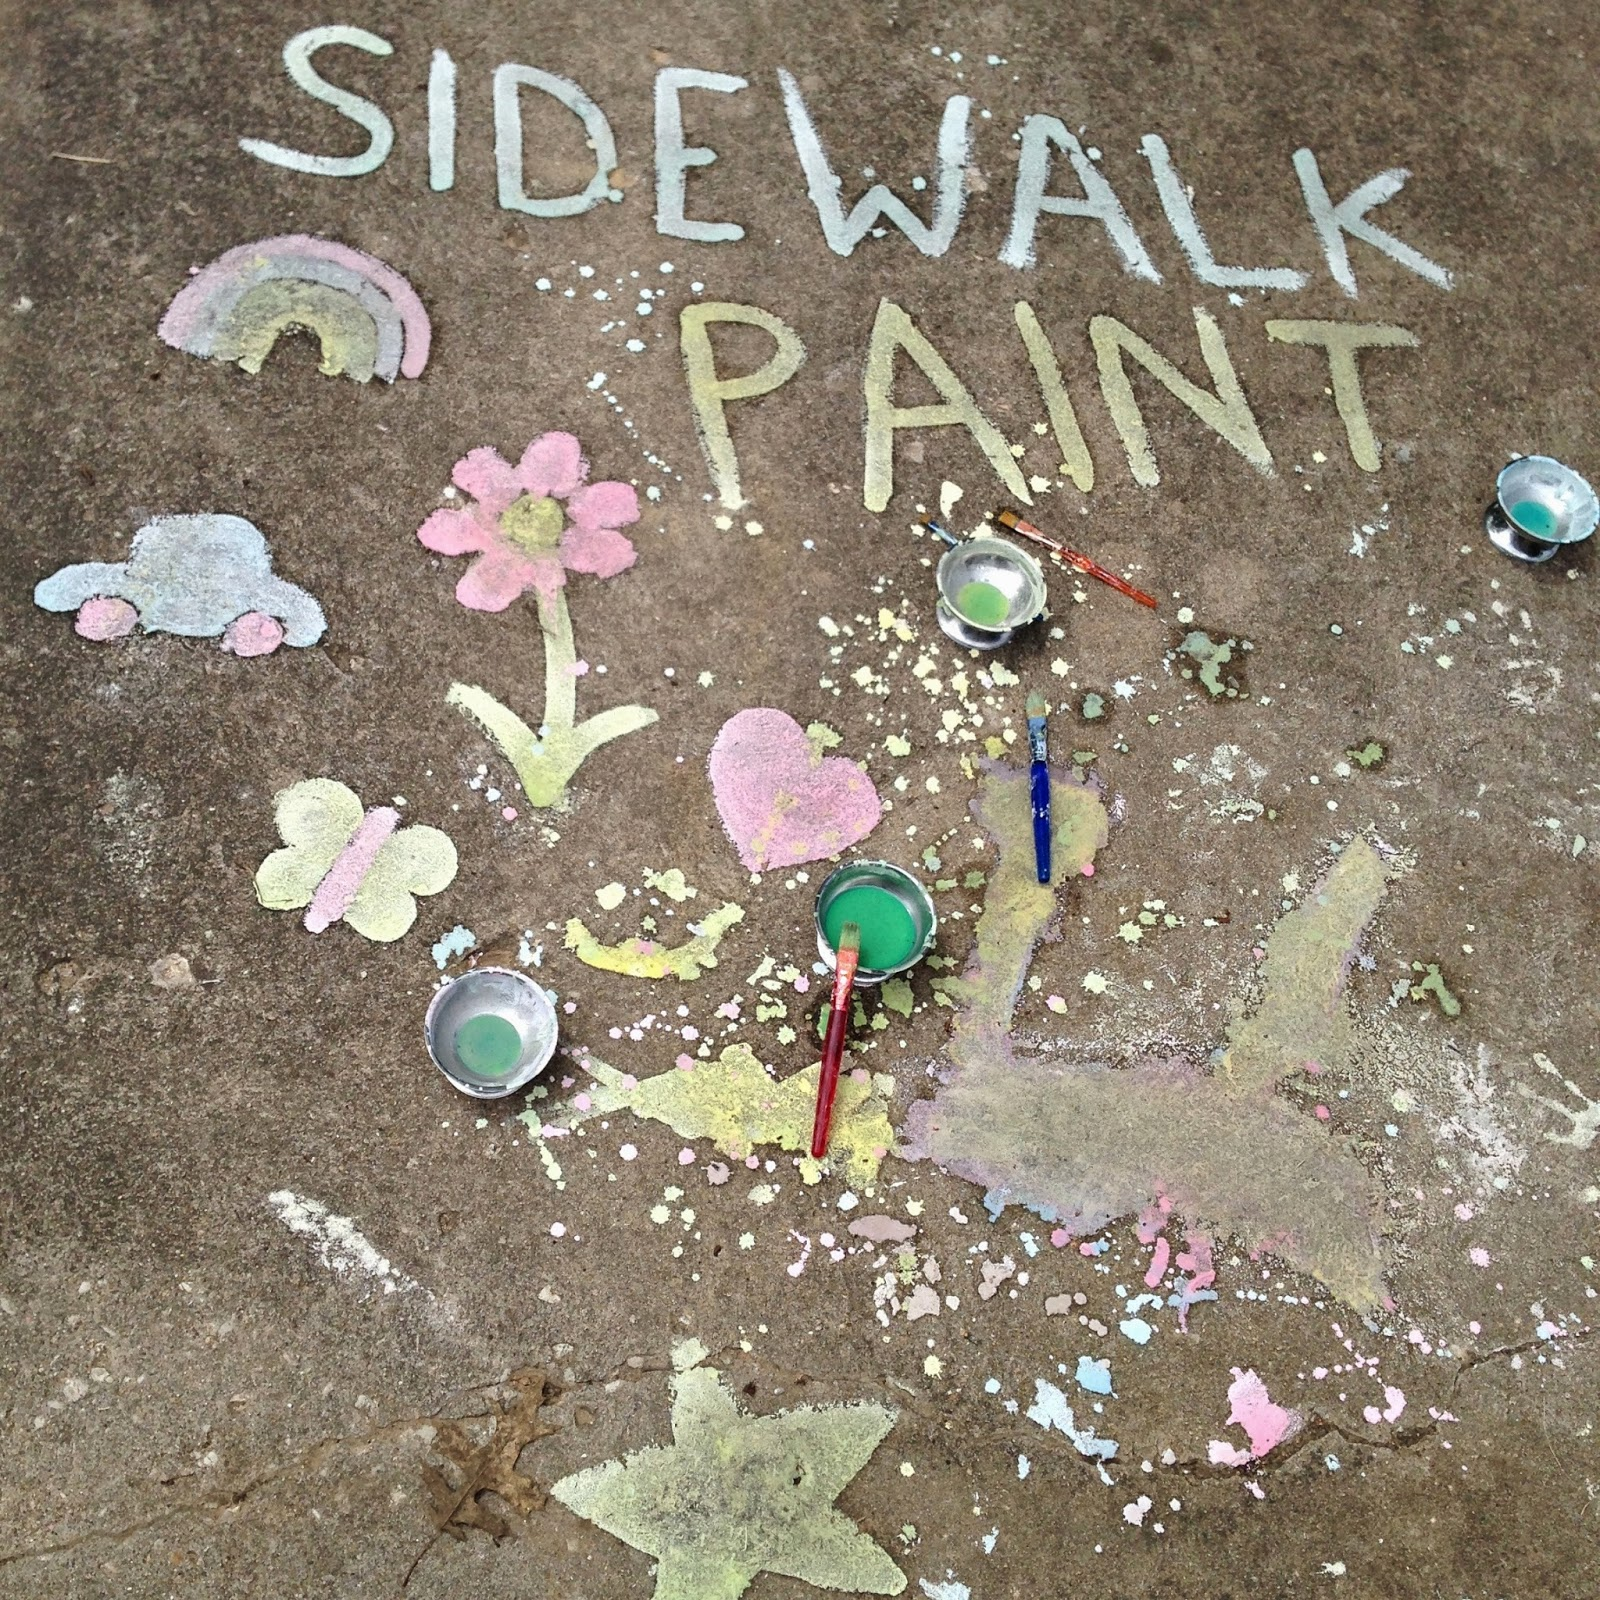 Sidewalk paint @ whatilivefor.net